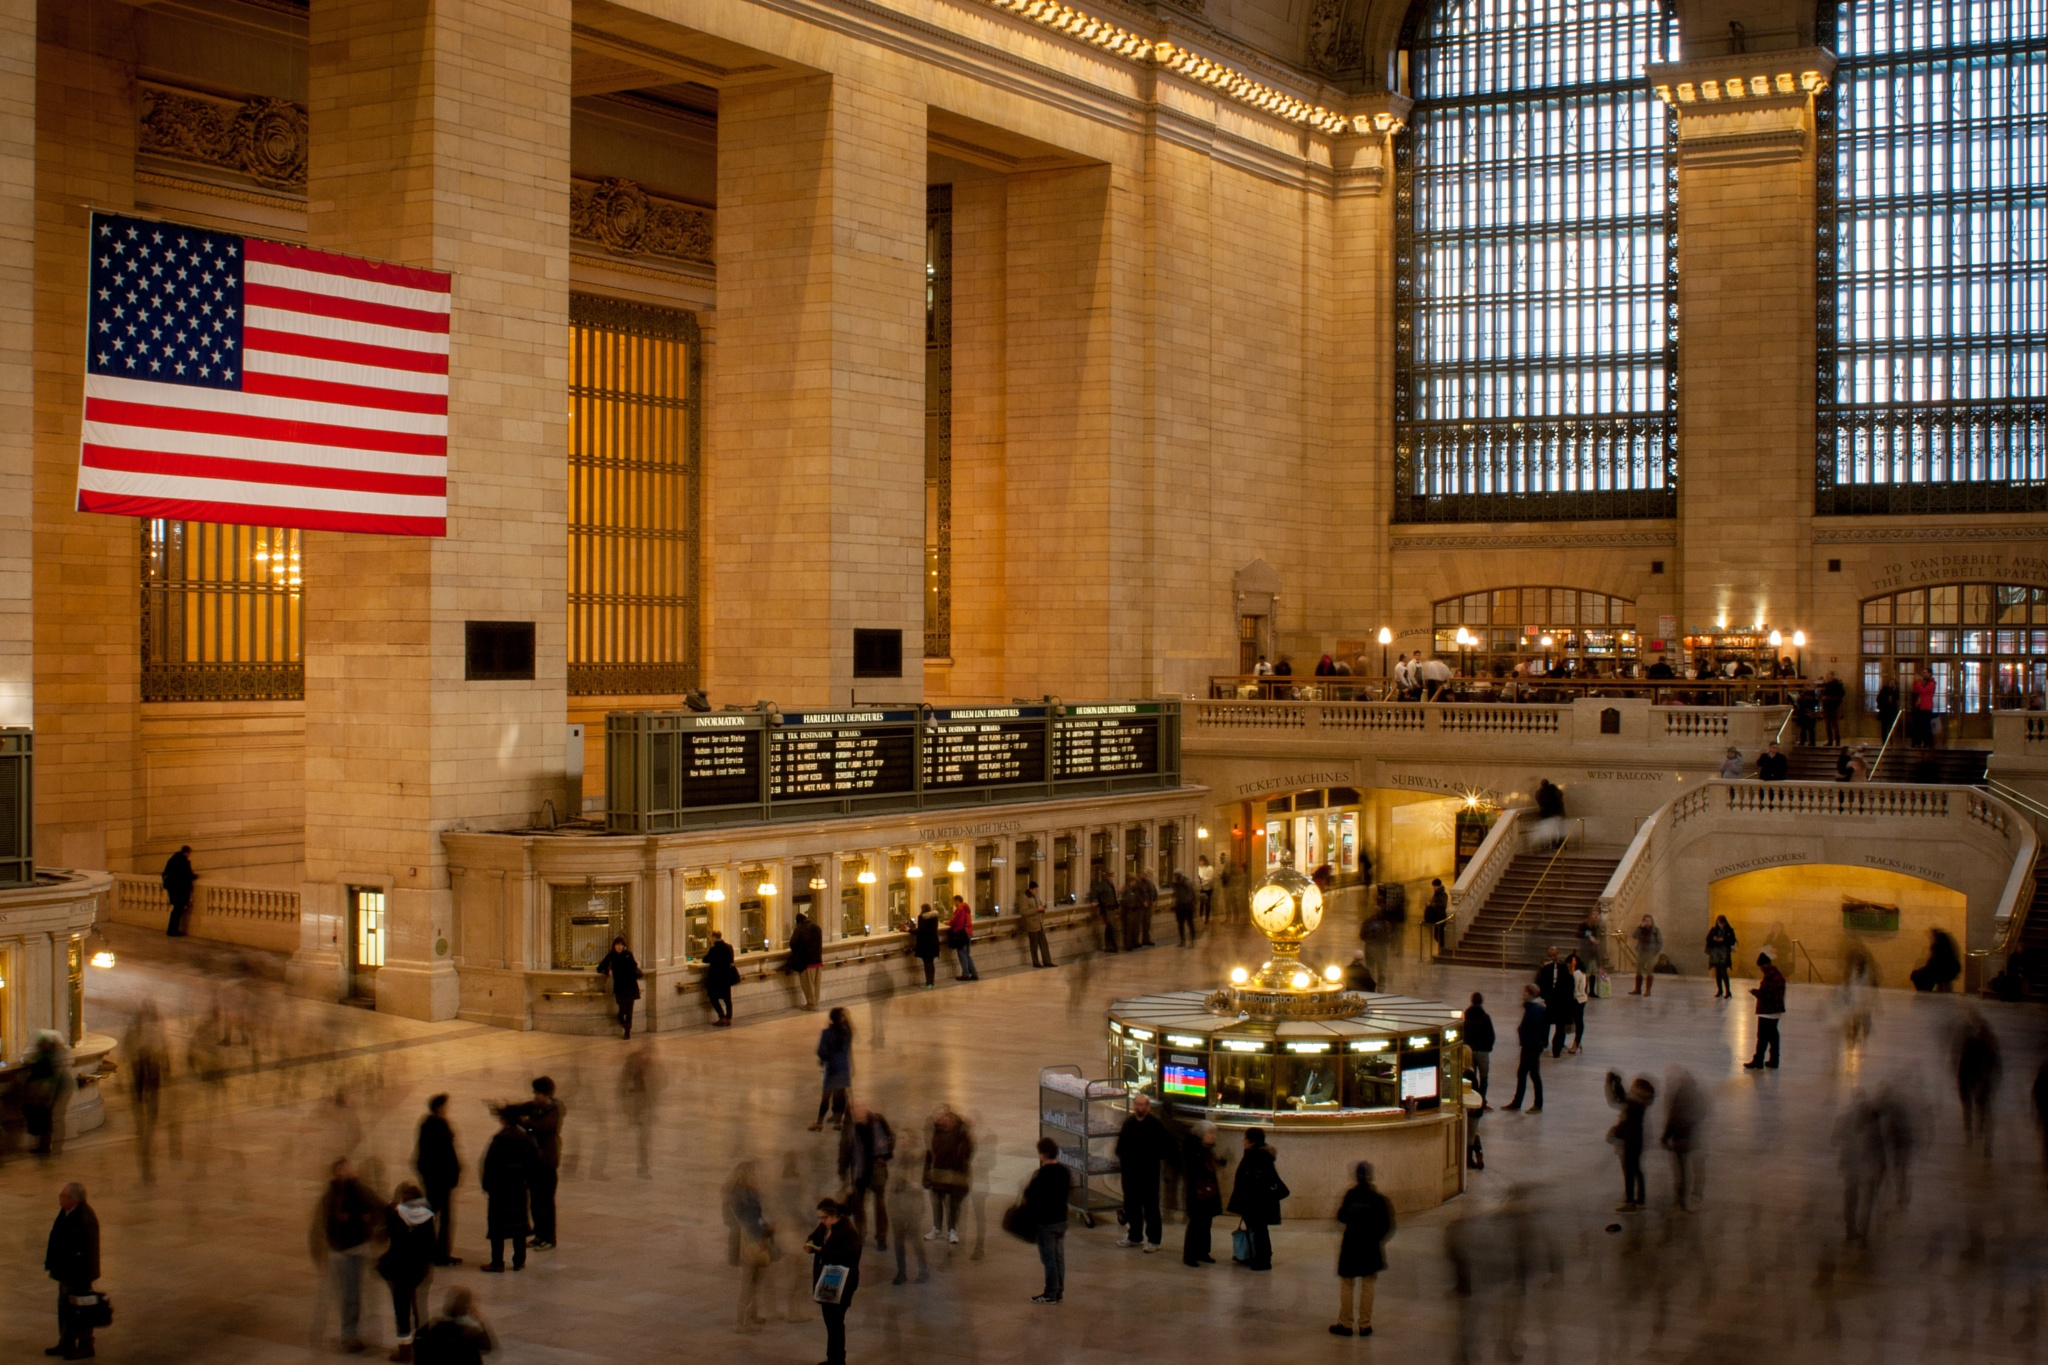 Grand Central by sambakerphotography